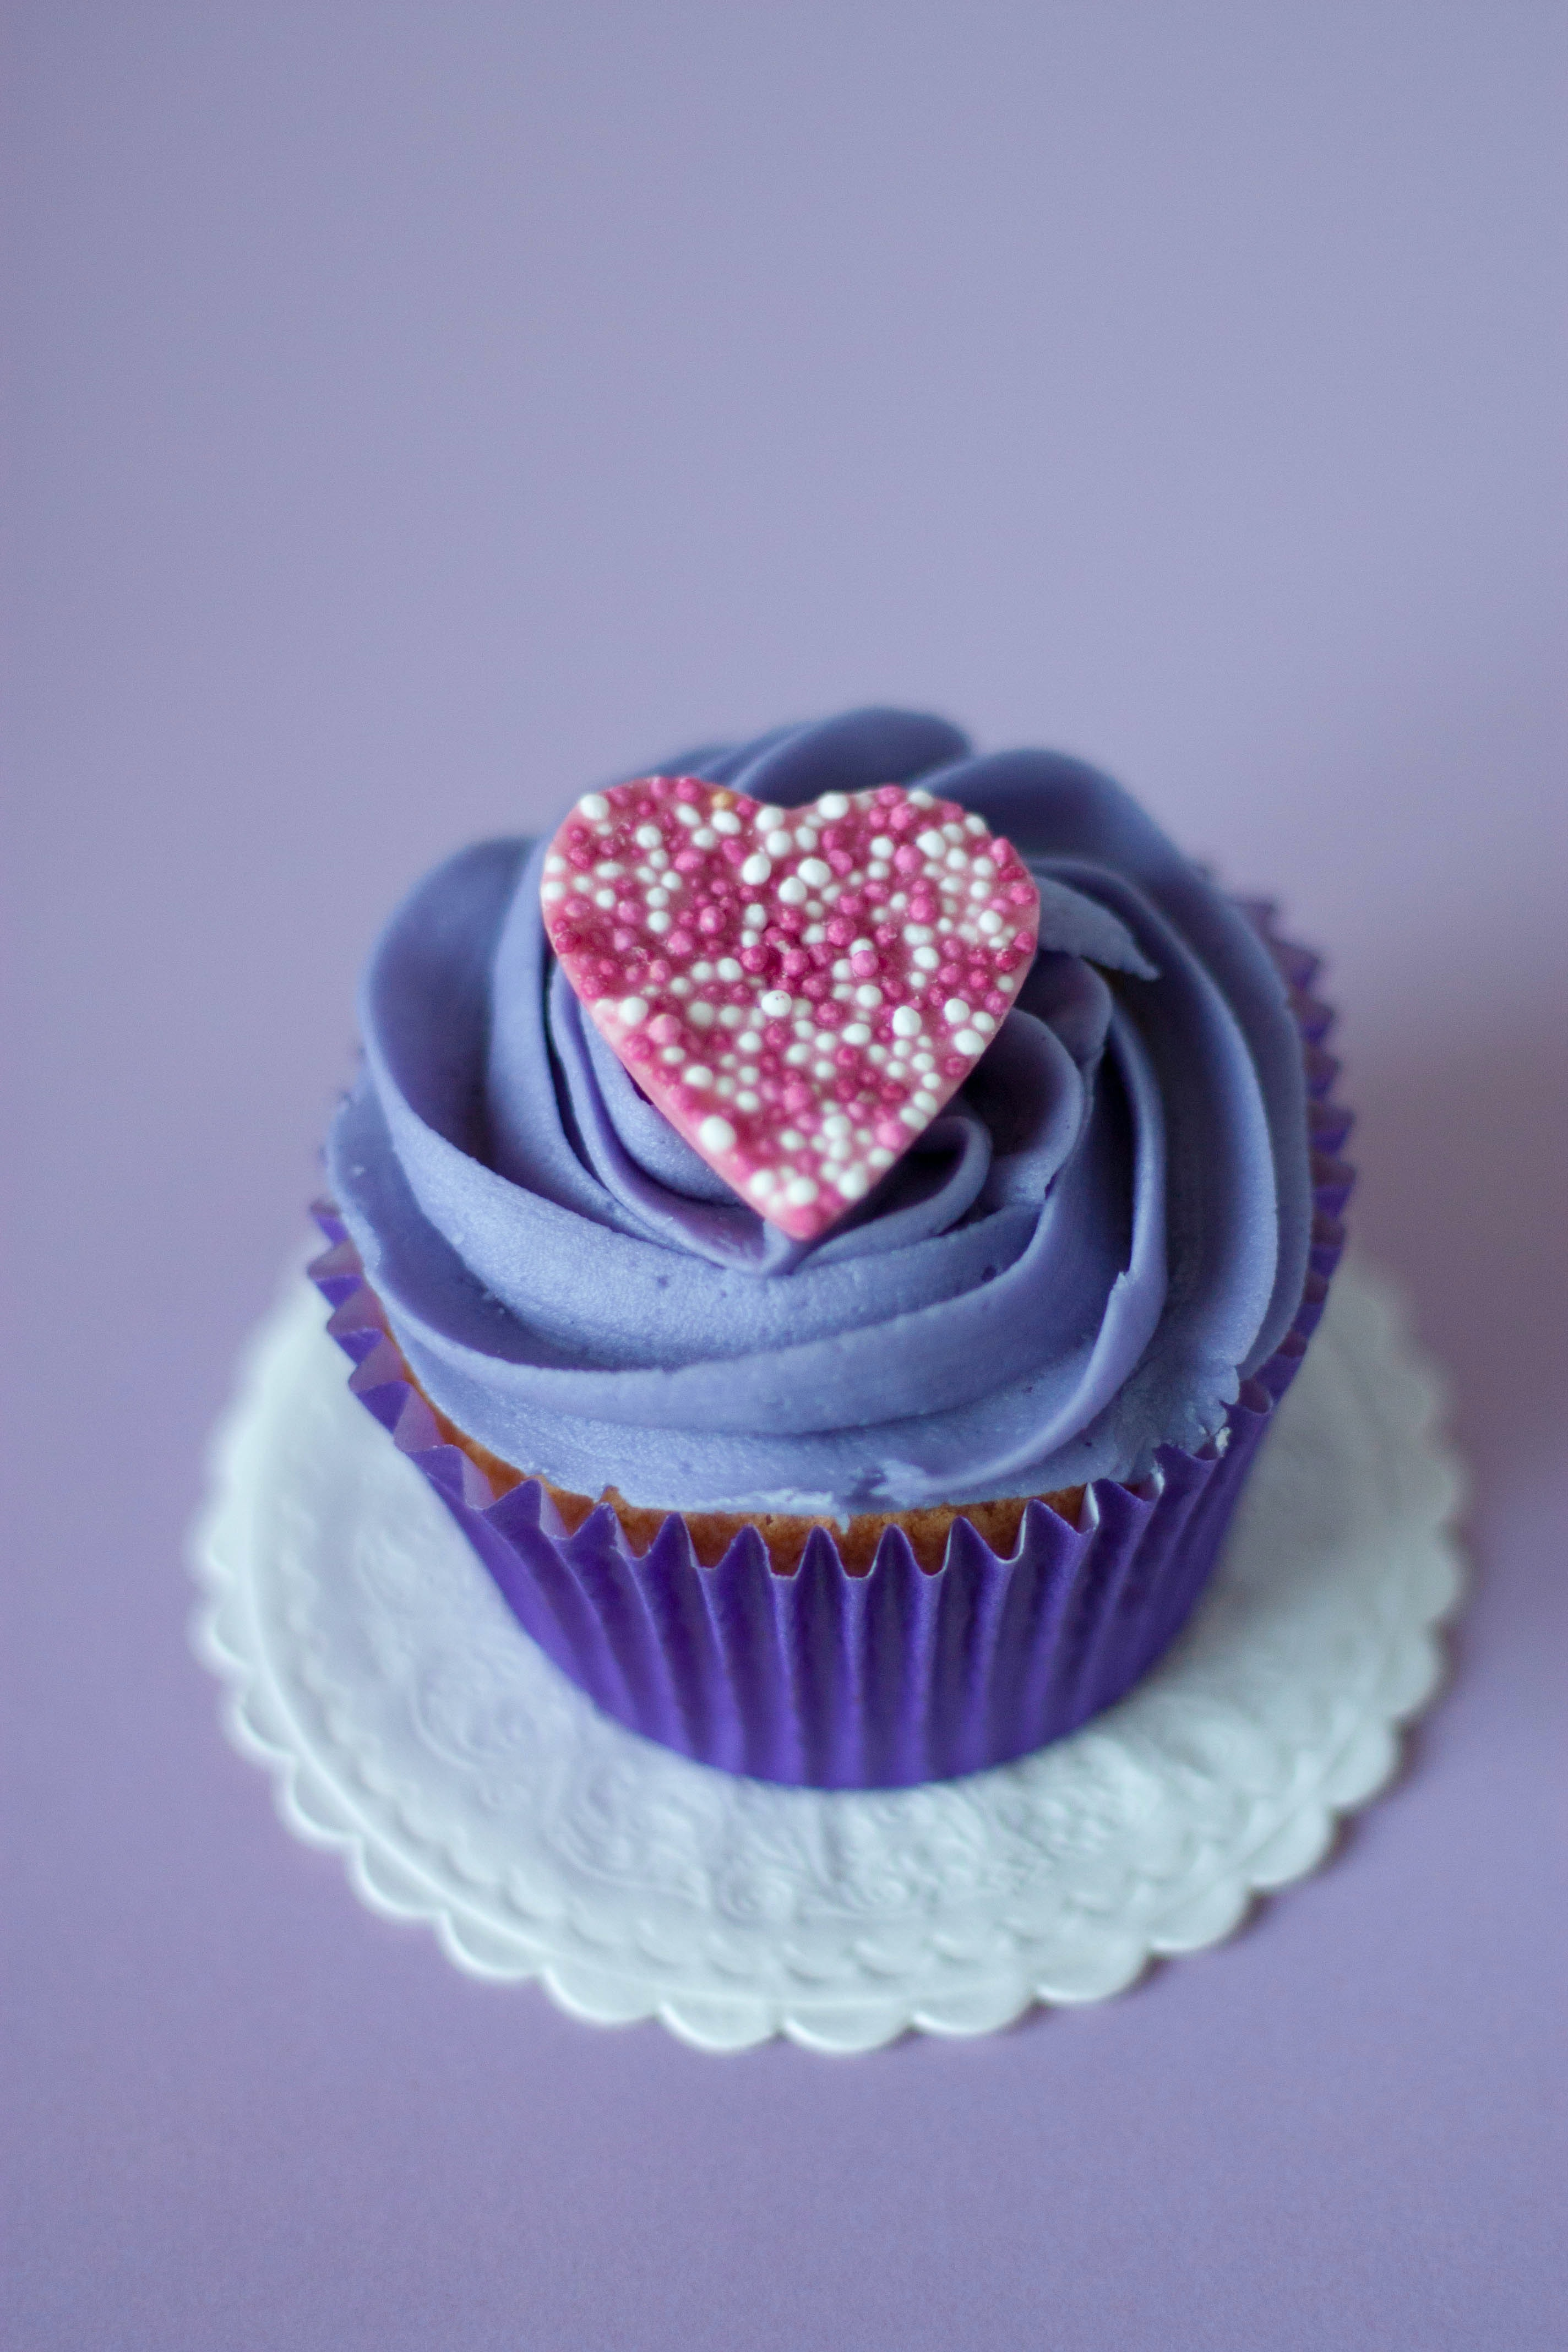 purple cupcake with heart frosting 183 free stock photo